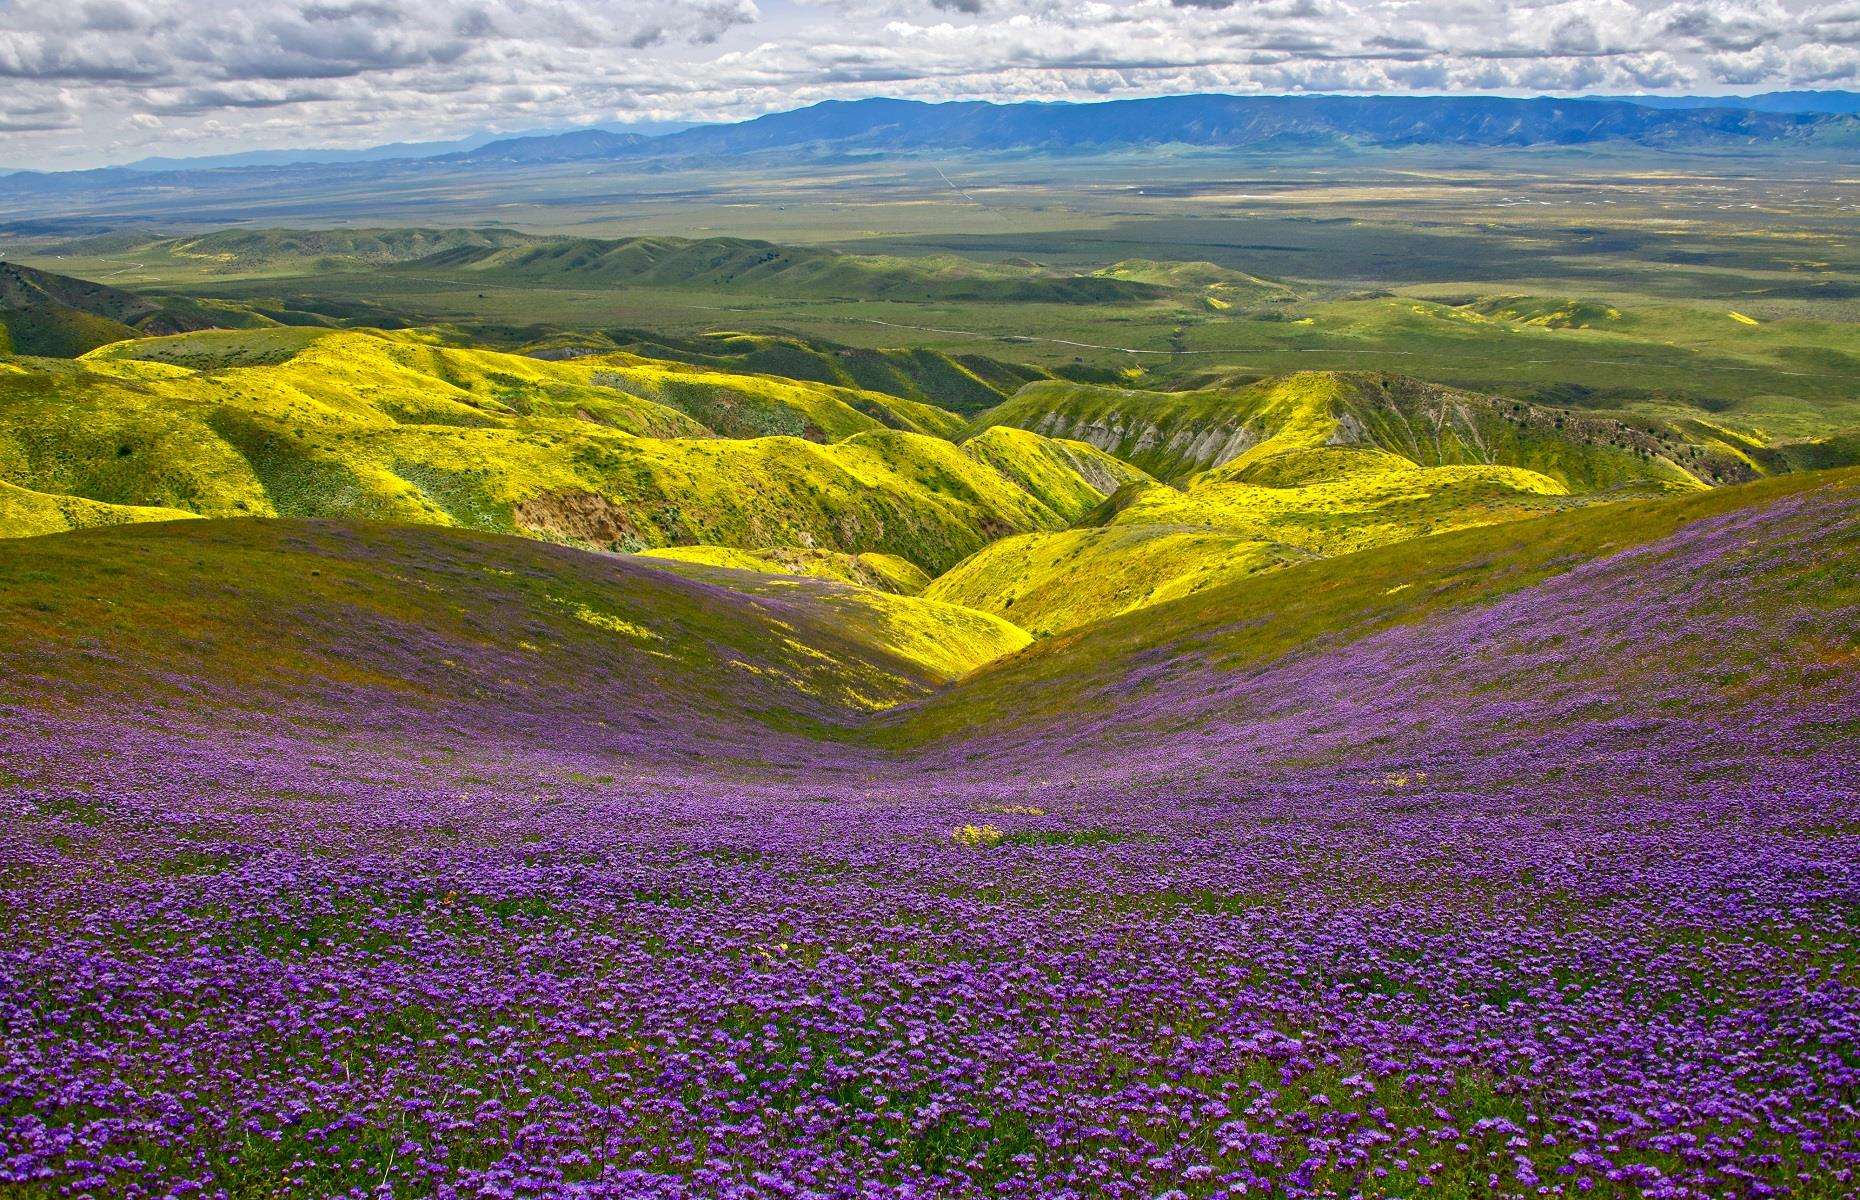 Slide 32 of 59: You might not normally consider plains to be natural wonders but this one in California might change your mind. Carrizo Plain National Monument, in San Luis Obispo County, is the largest single native grassland remaining in the state of California. Covering more than 200,000 acres, the landscape is considered one of the best kept secrets in America and boasts alkali flats, vast open fields and wildflowers every spring.